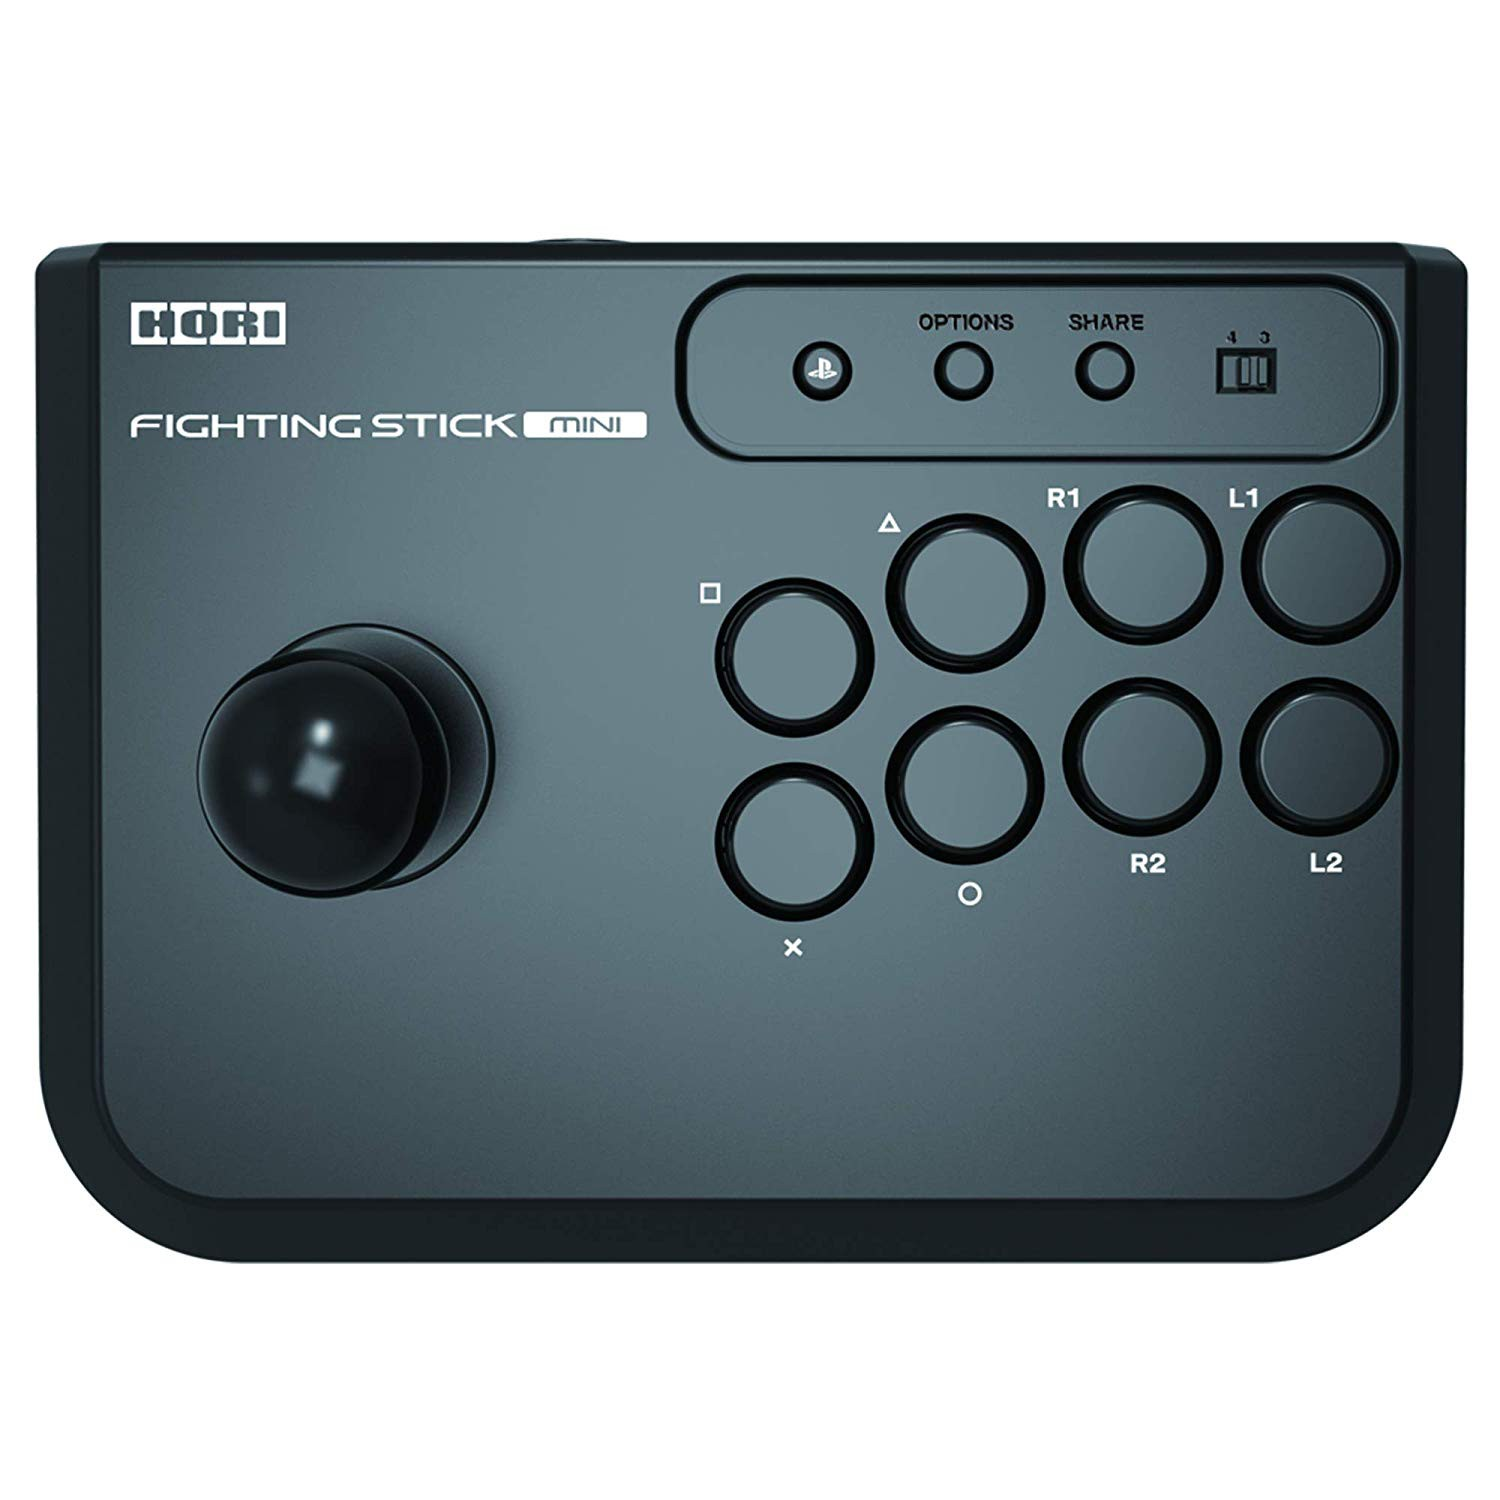 HORI Fighting Stick MINI 4 for PlayStation®4